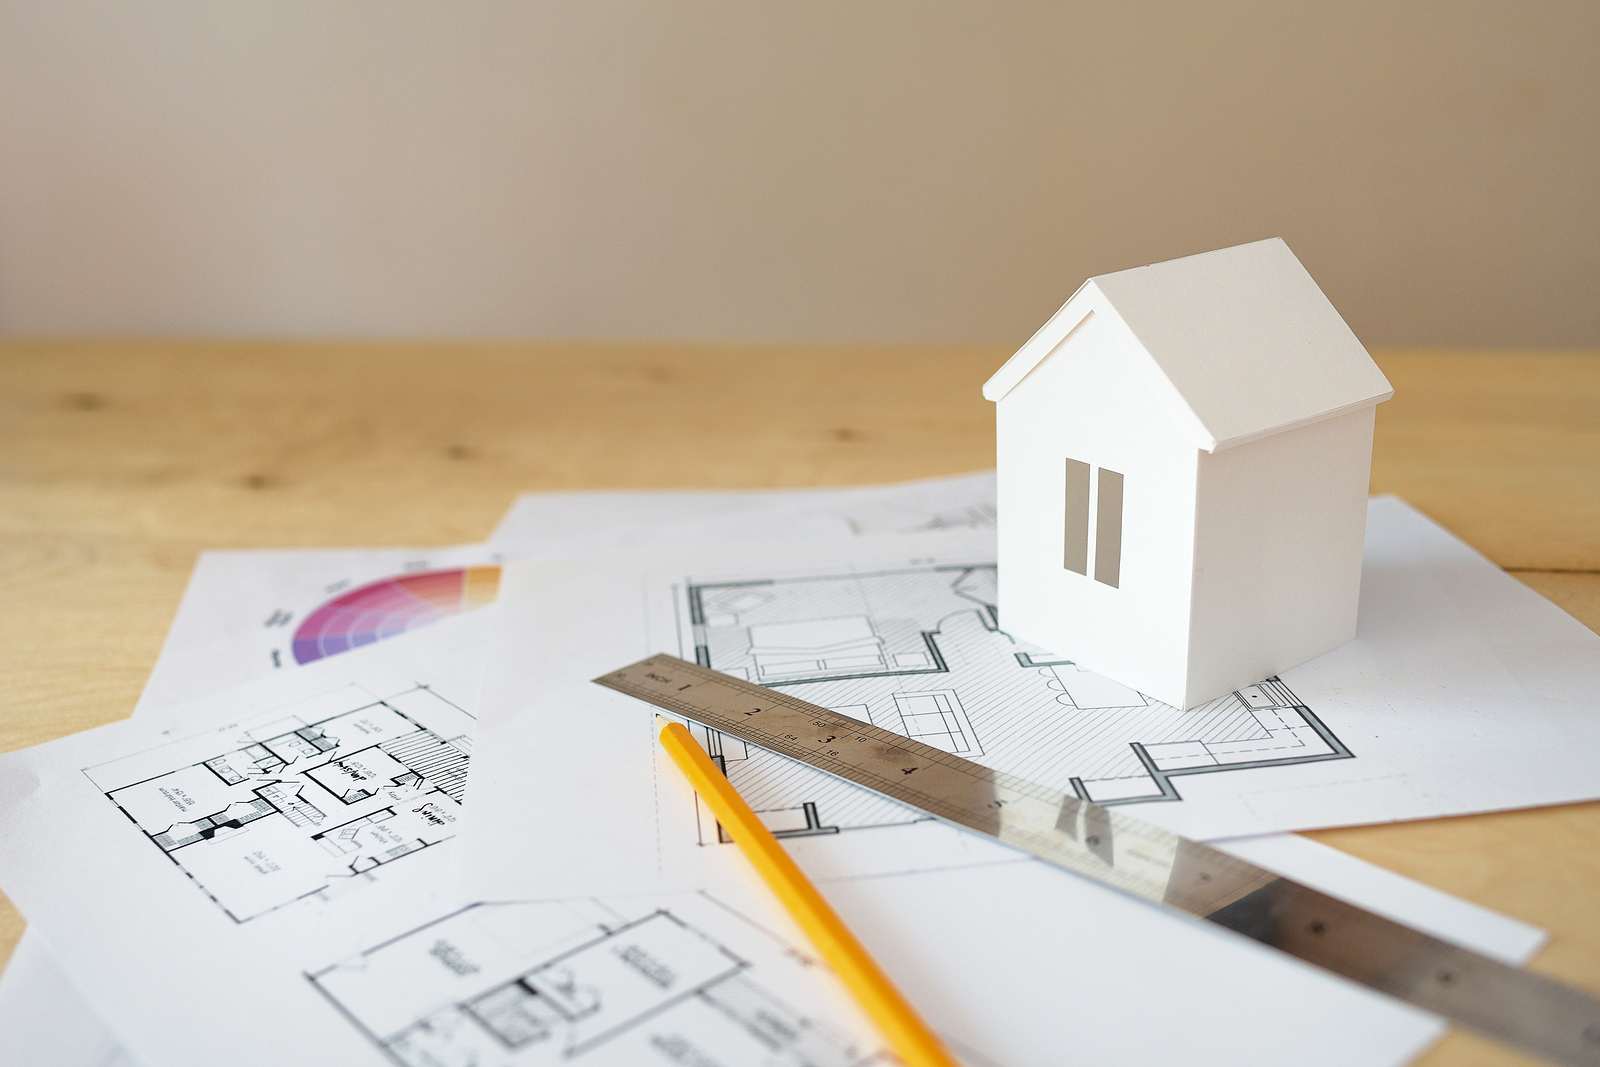 Small house plans in the finishing stages of the drafting process